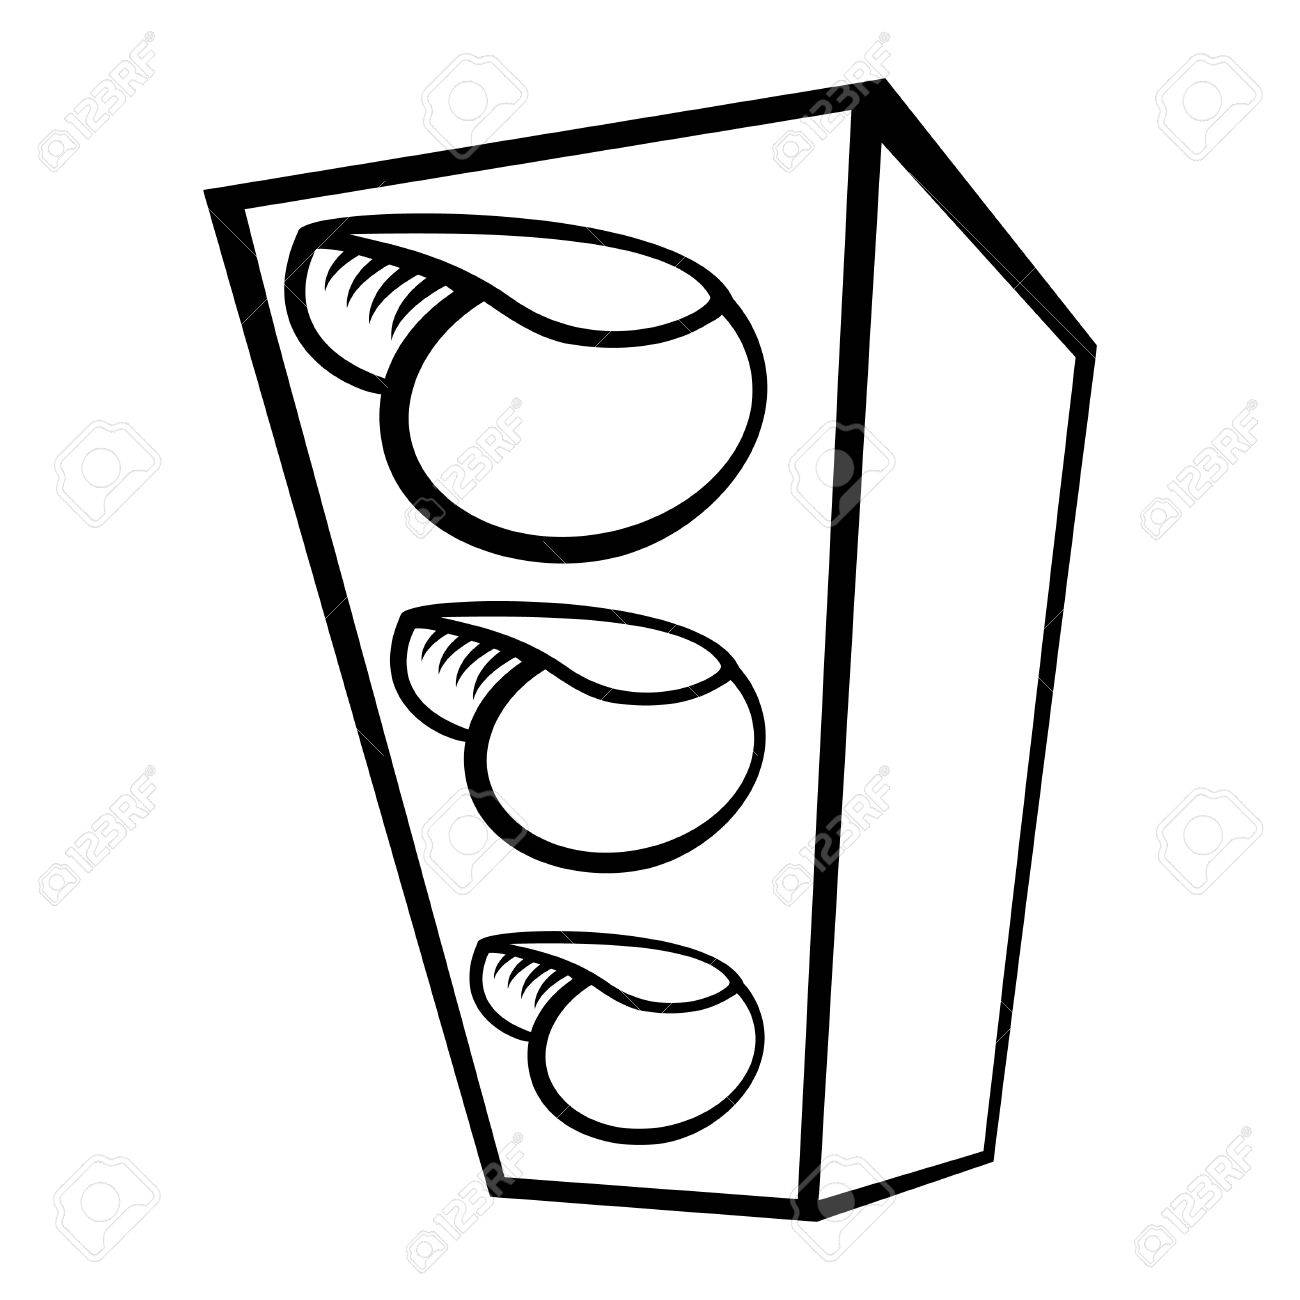 Traffic Light Royalty Free Cliparts, Vectors, And Stock Illustration ... for stop light black and white  45hul